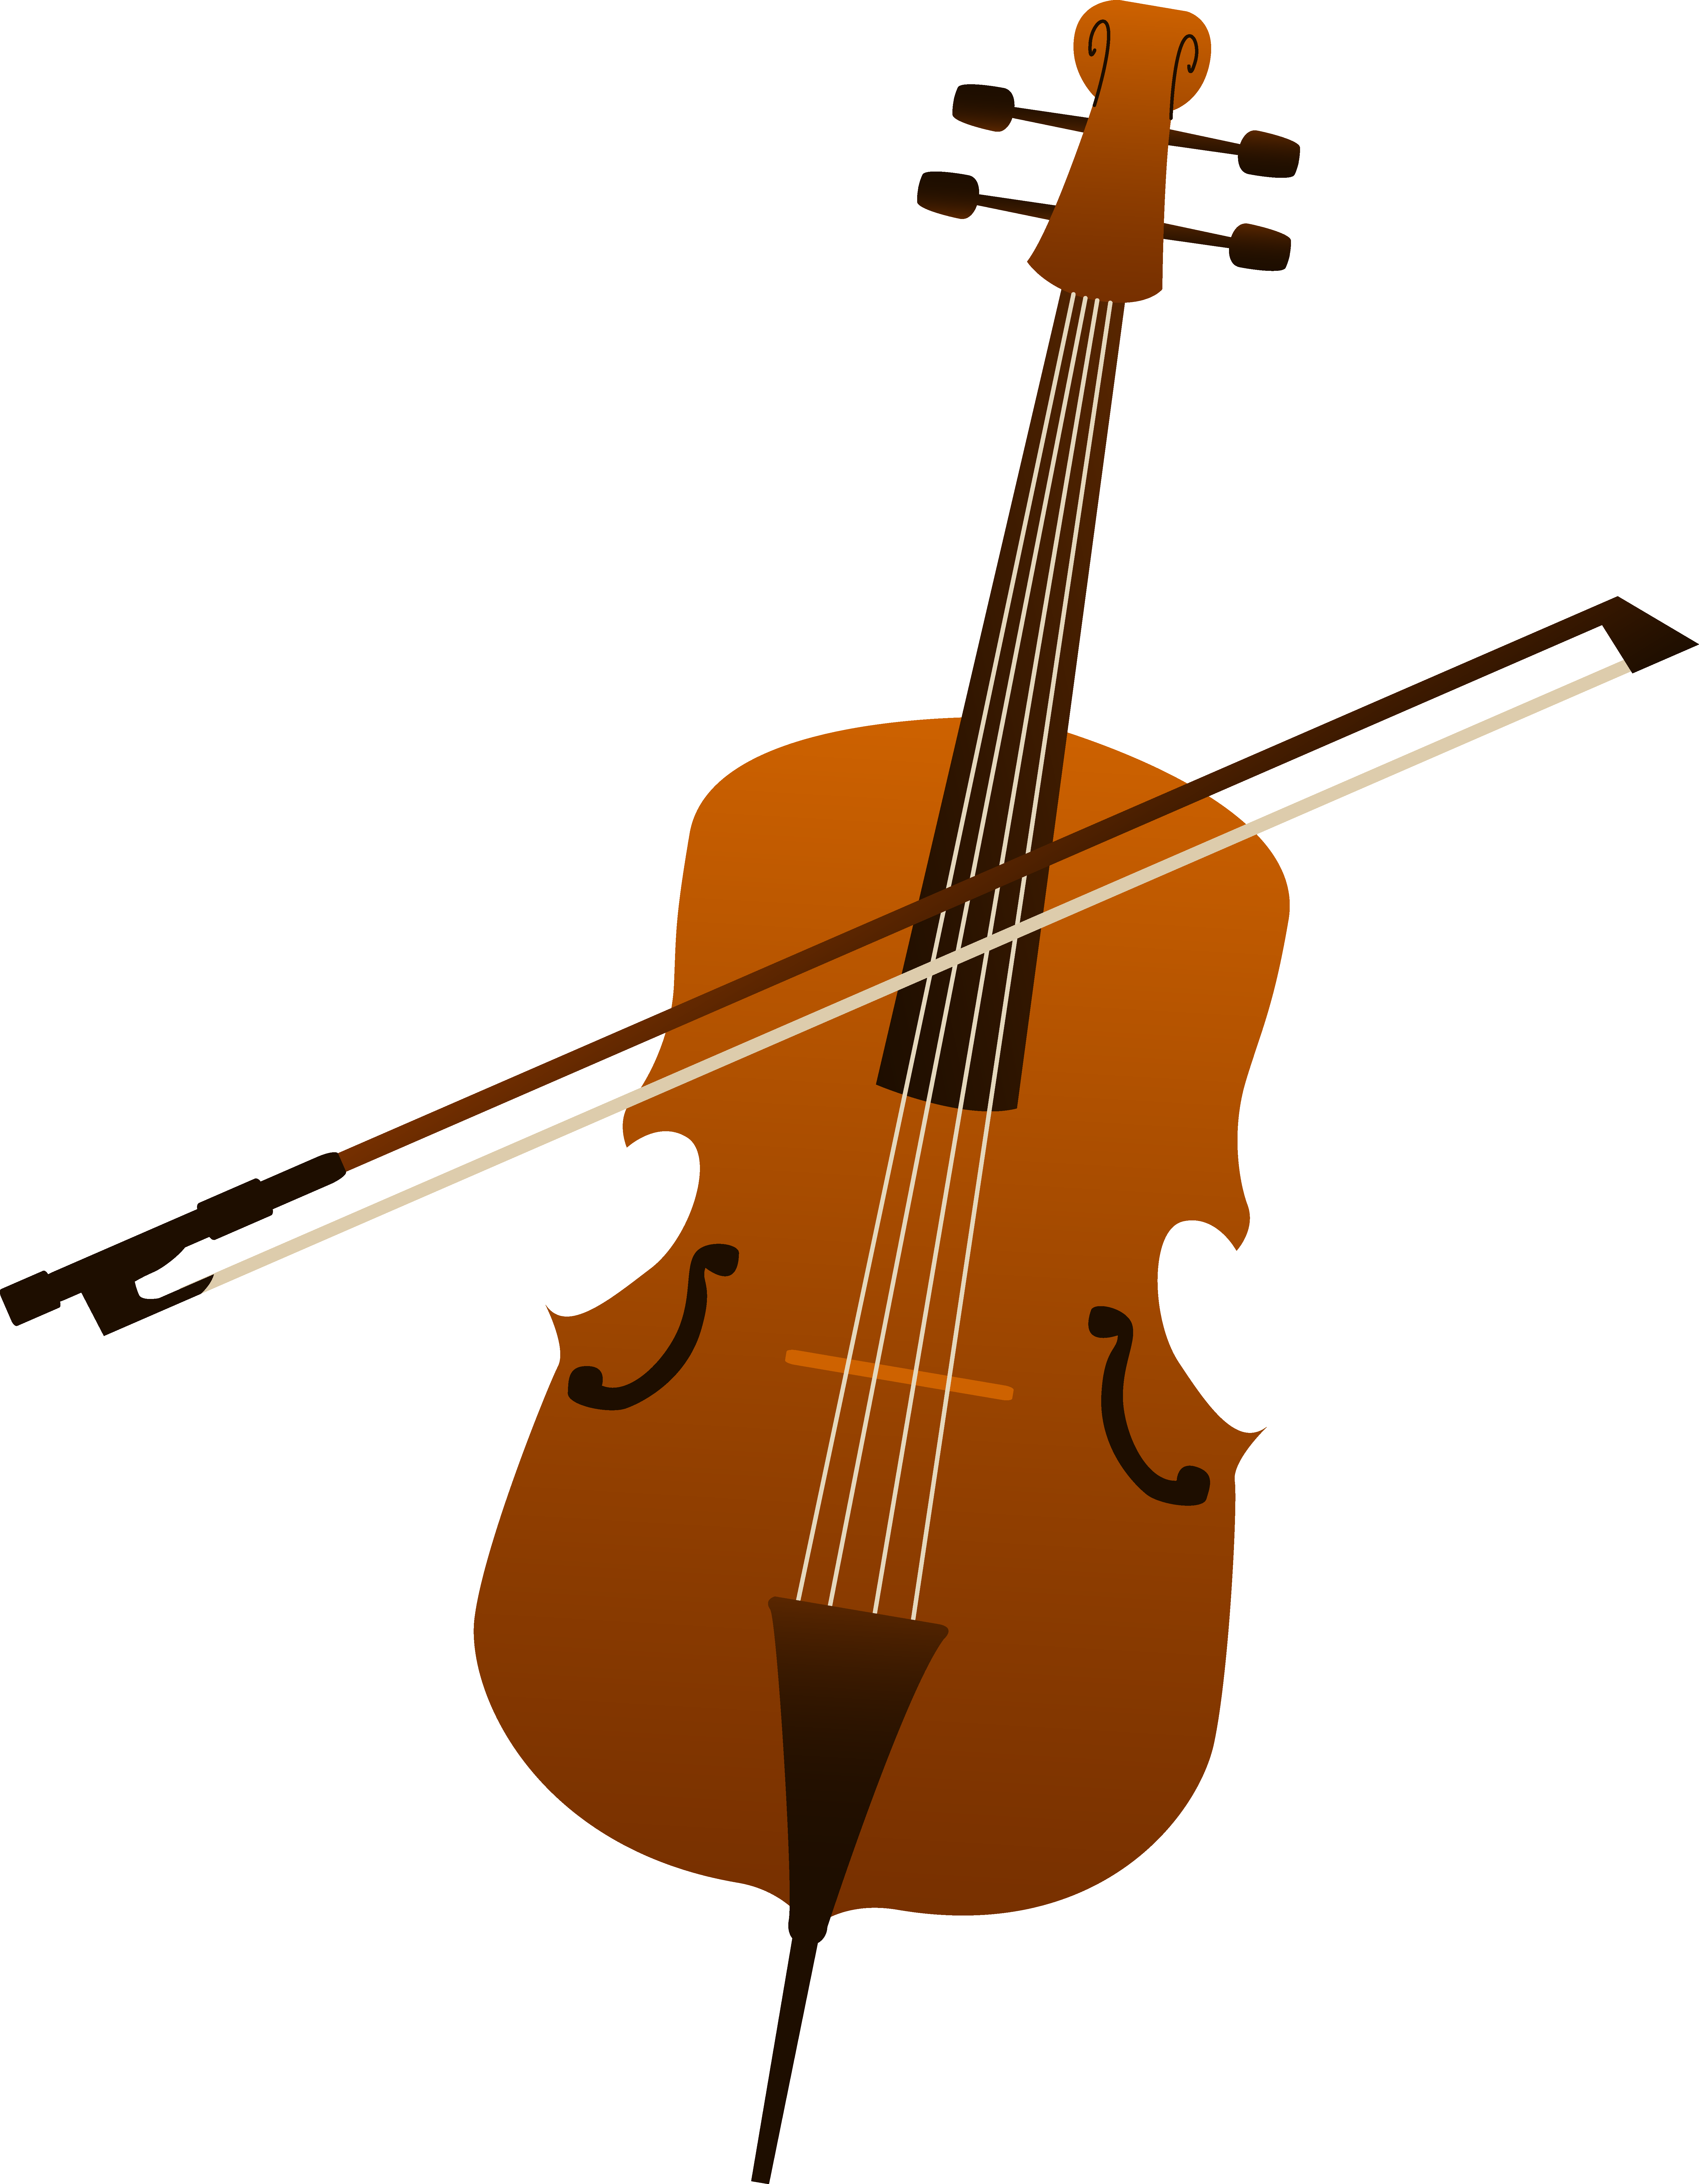 image freeuse library Cello clipart gambar. Cellist panda free images.